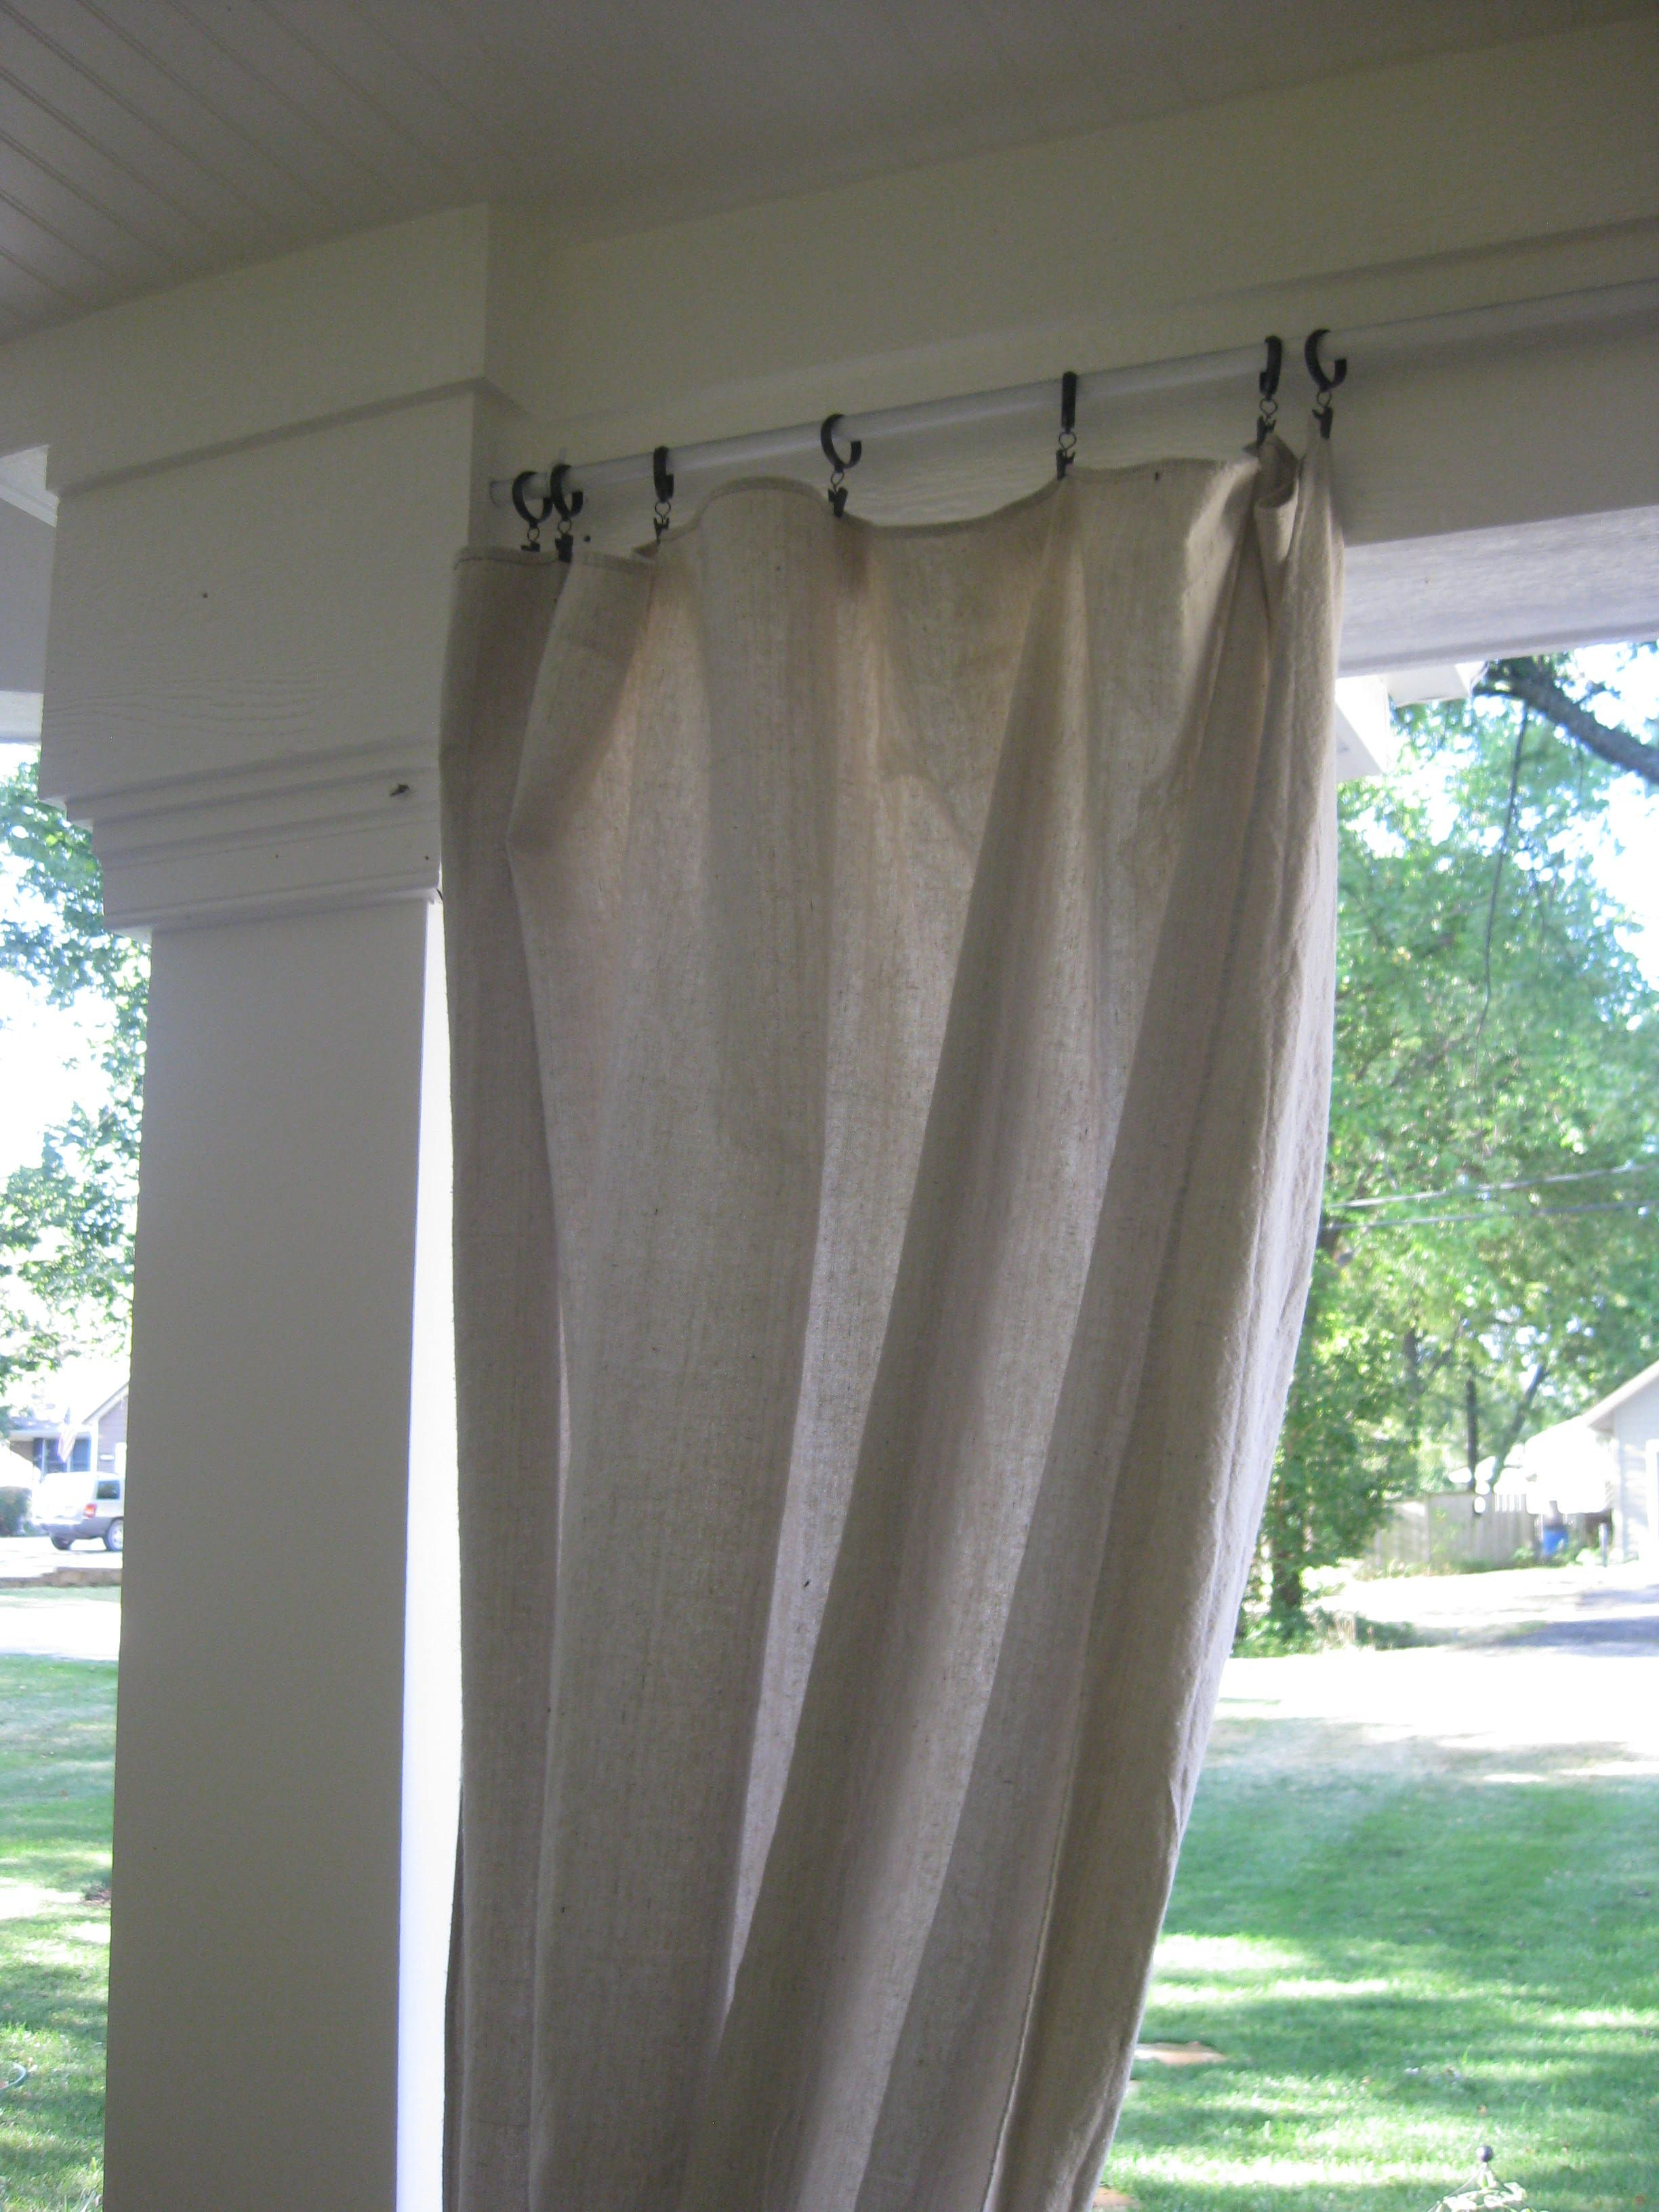 Pictures shows curtain rod which was a 10\' section of metal ...